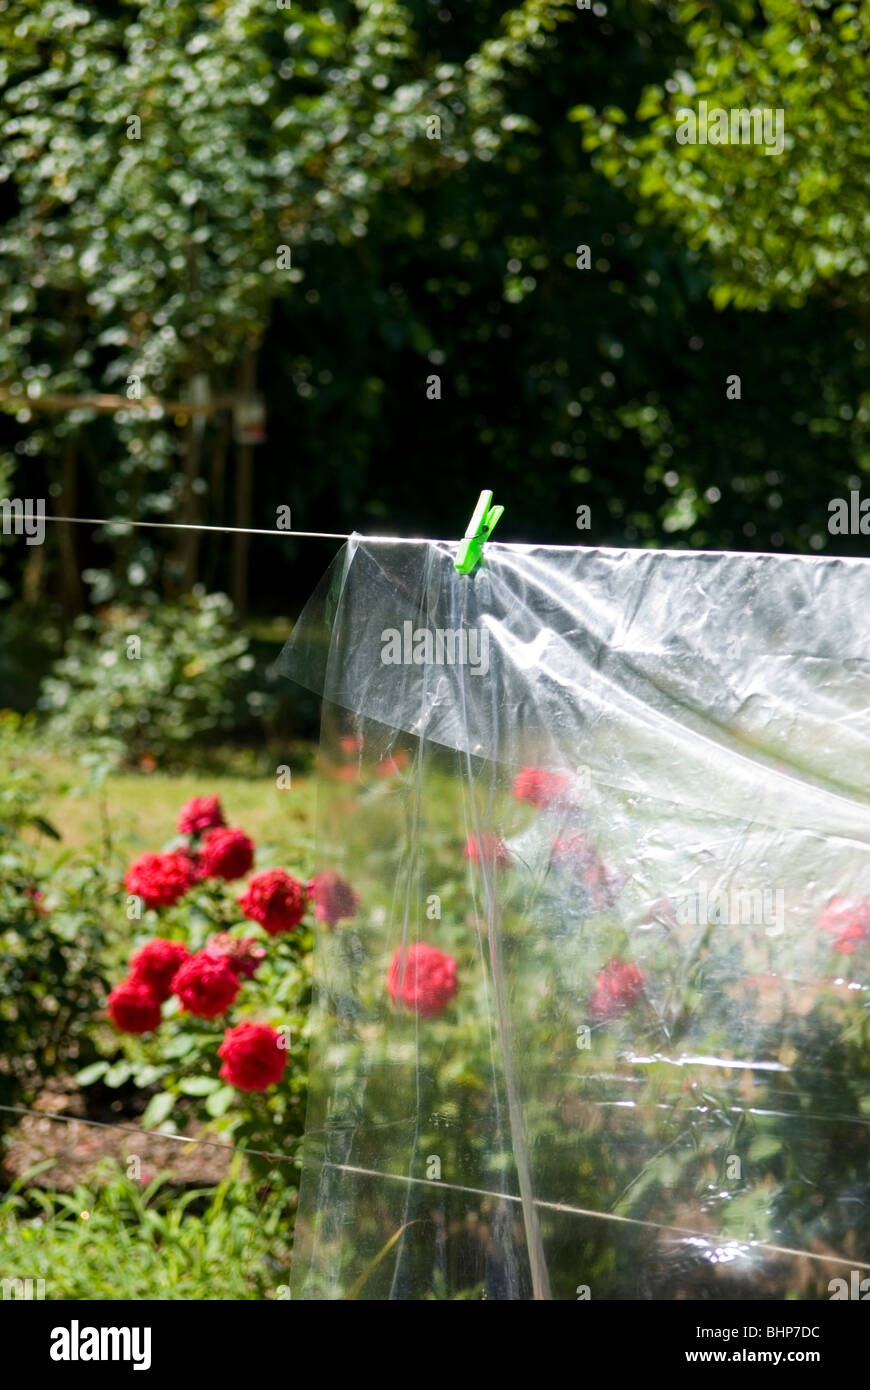 a transparent plastic sheet hangs in the sun in a garden with a vibrant bed of roses in background - Stock Image